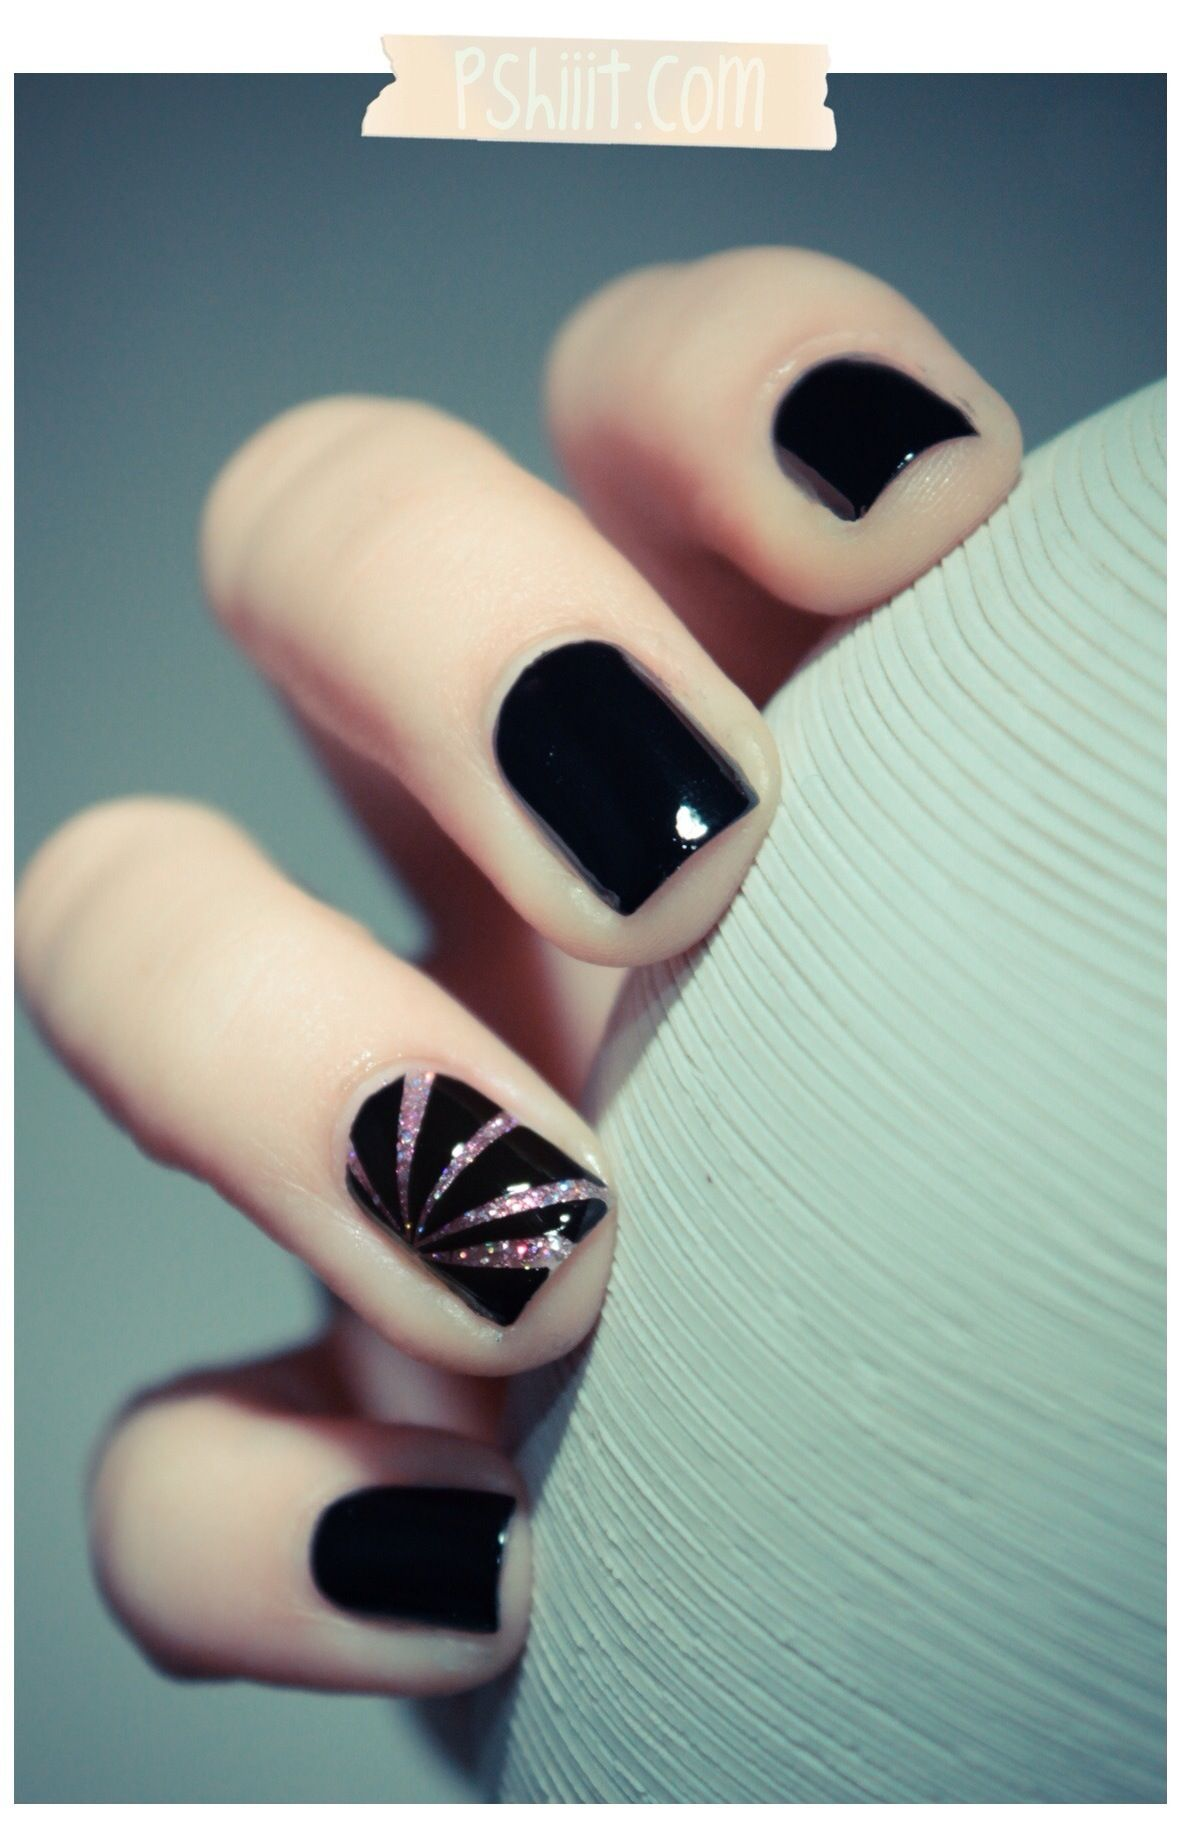 SHINE BLACK find more fashion nails desgins on gallery.buzznails.com ...